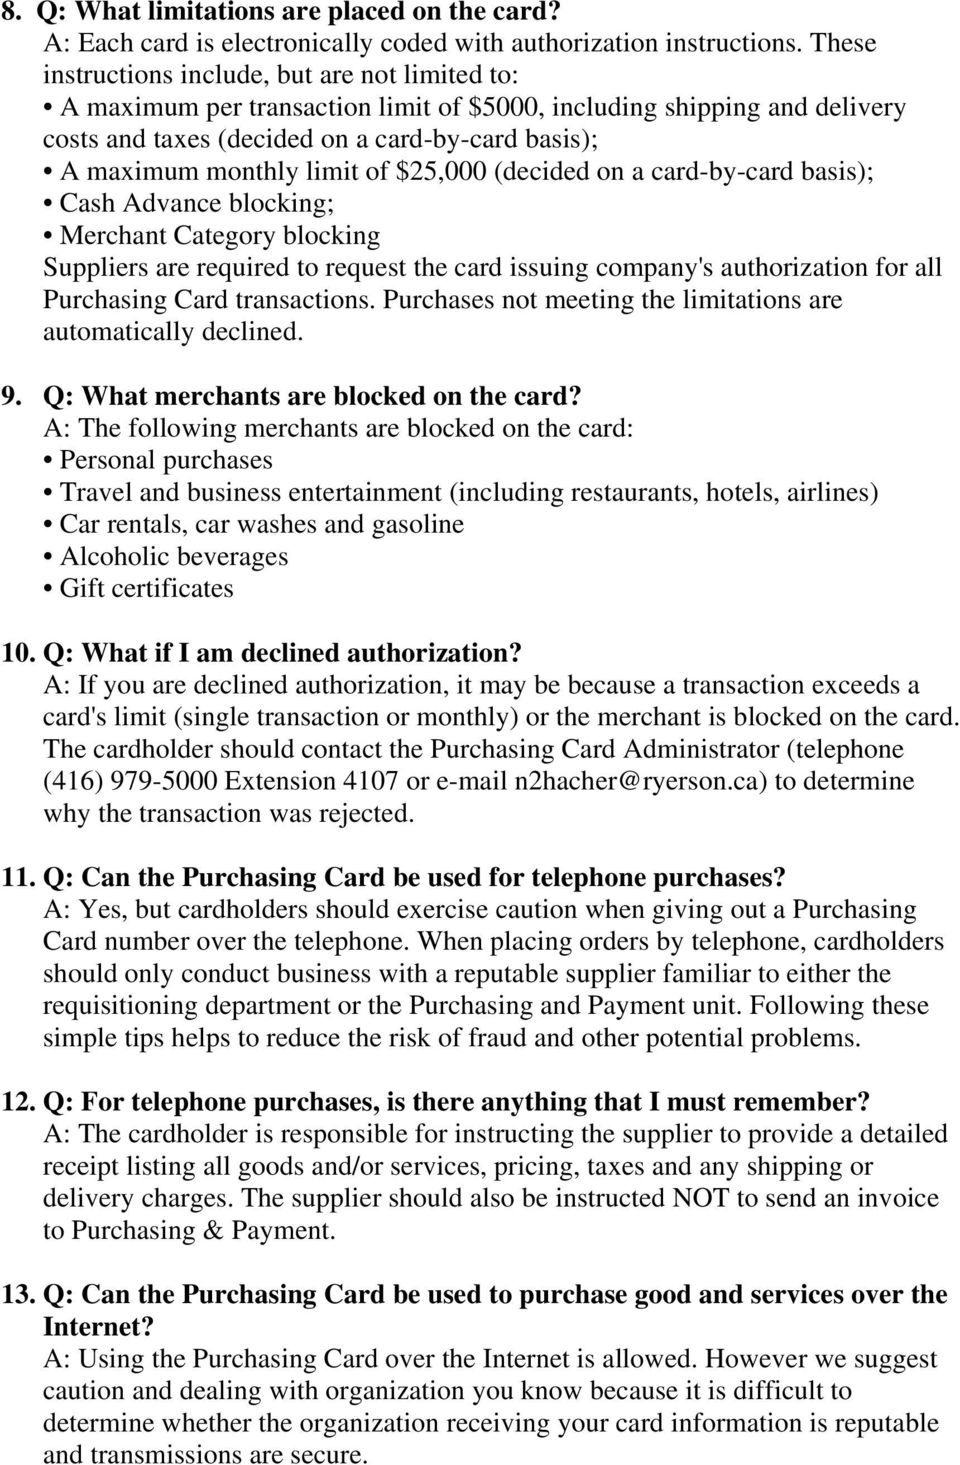 limit of $25,000 (decided on a card-by-card basis); Cash Advance blocking; Merchant Category blocking Suppliers are required to request the card issuing company's authorization for all Purchasing